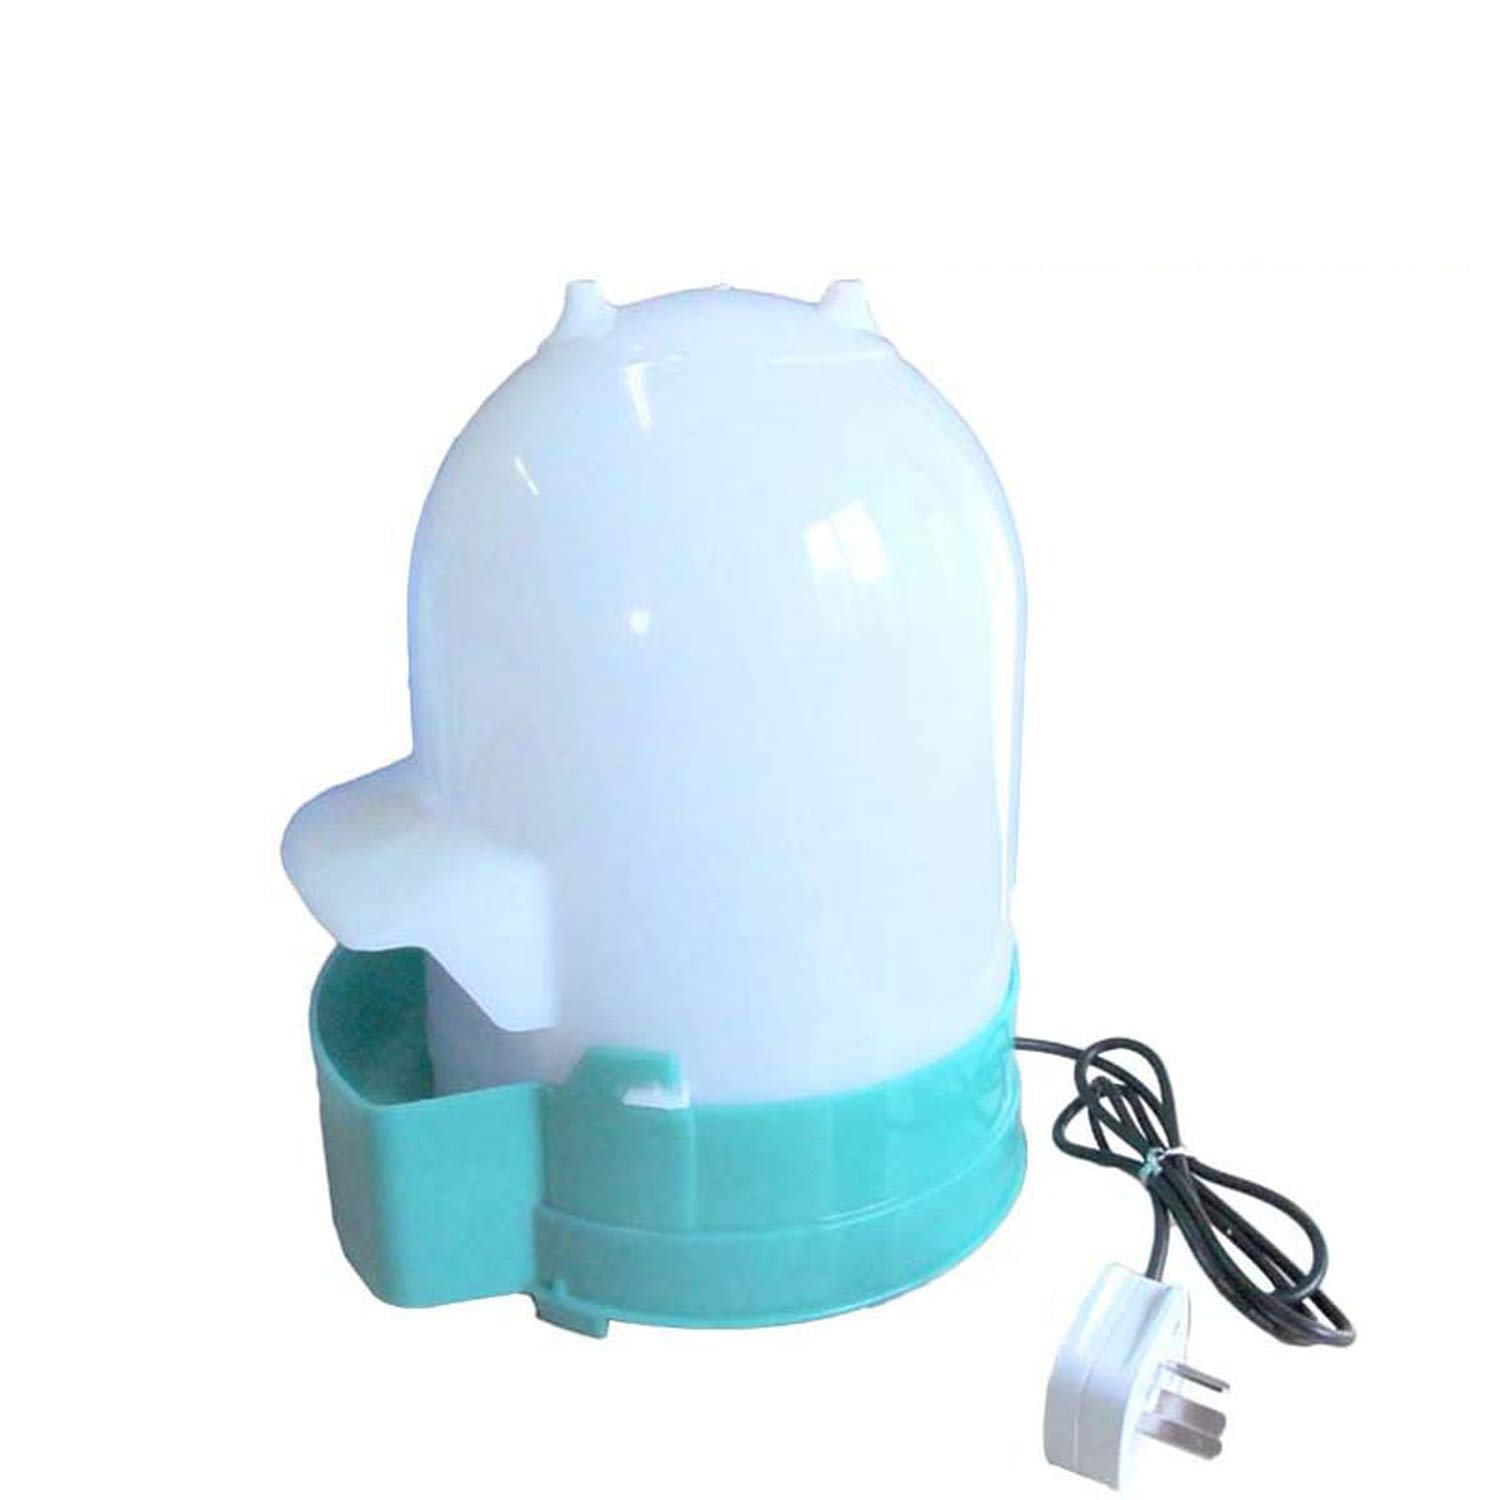 Jim-Hugh Bird Feeding Pigeon Automatic Drinking Water Anti Icing Water Dispenser Heating Kettle Dispenser